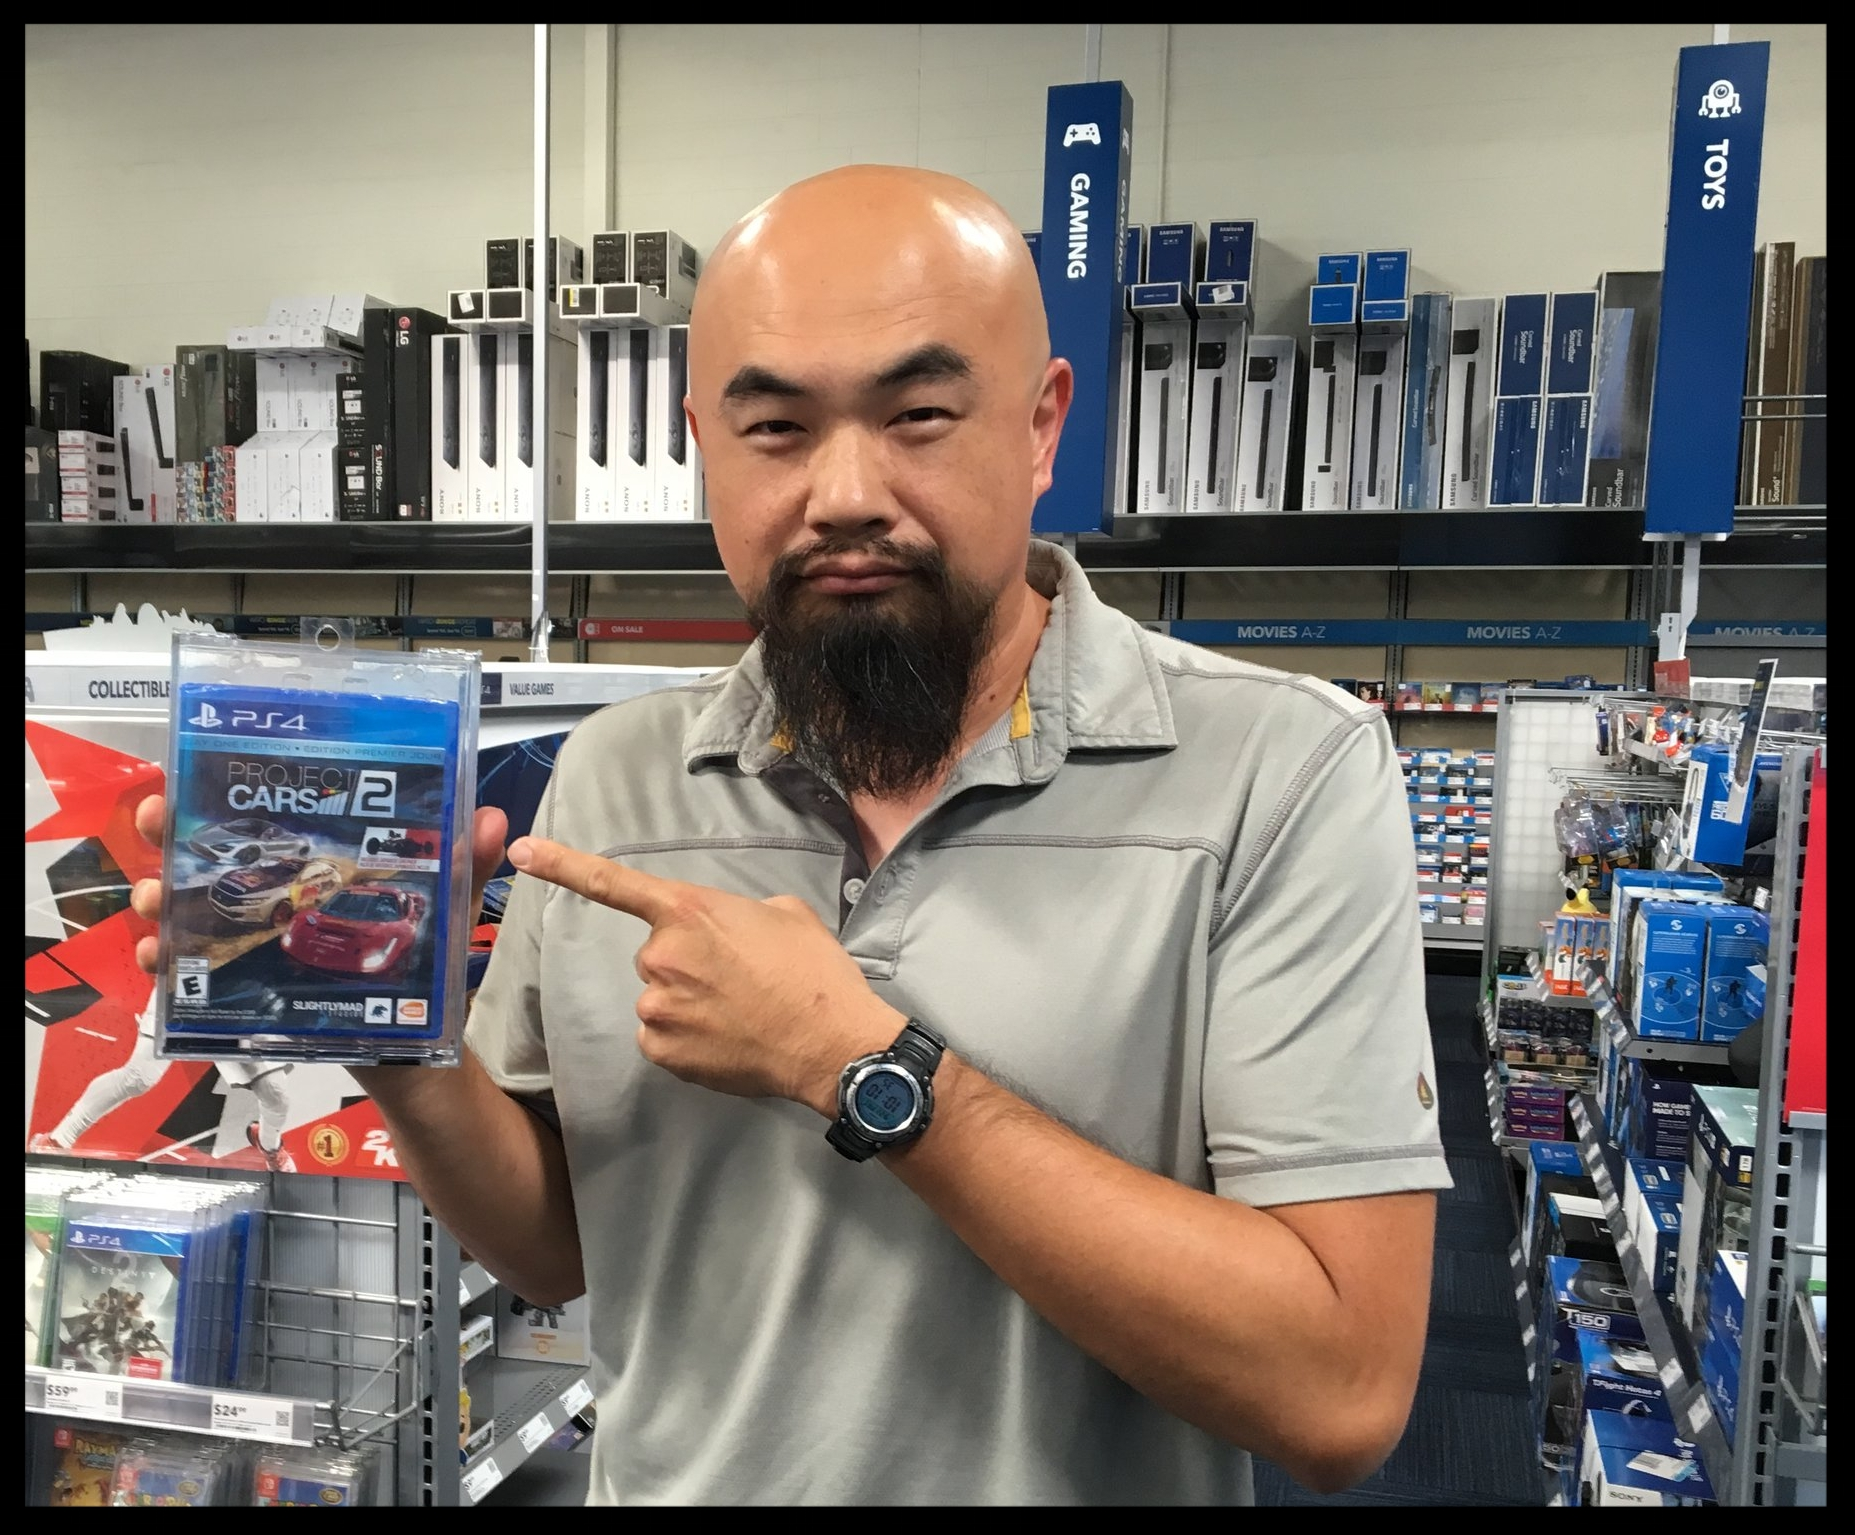 PROJECT CARS 2 GAME IN BEST BUY AND OTHER MAJOR RETAIL STORES